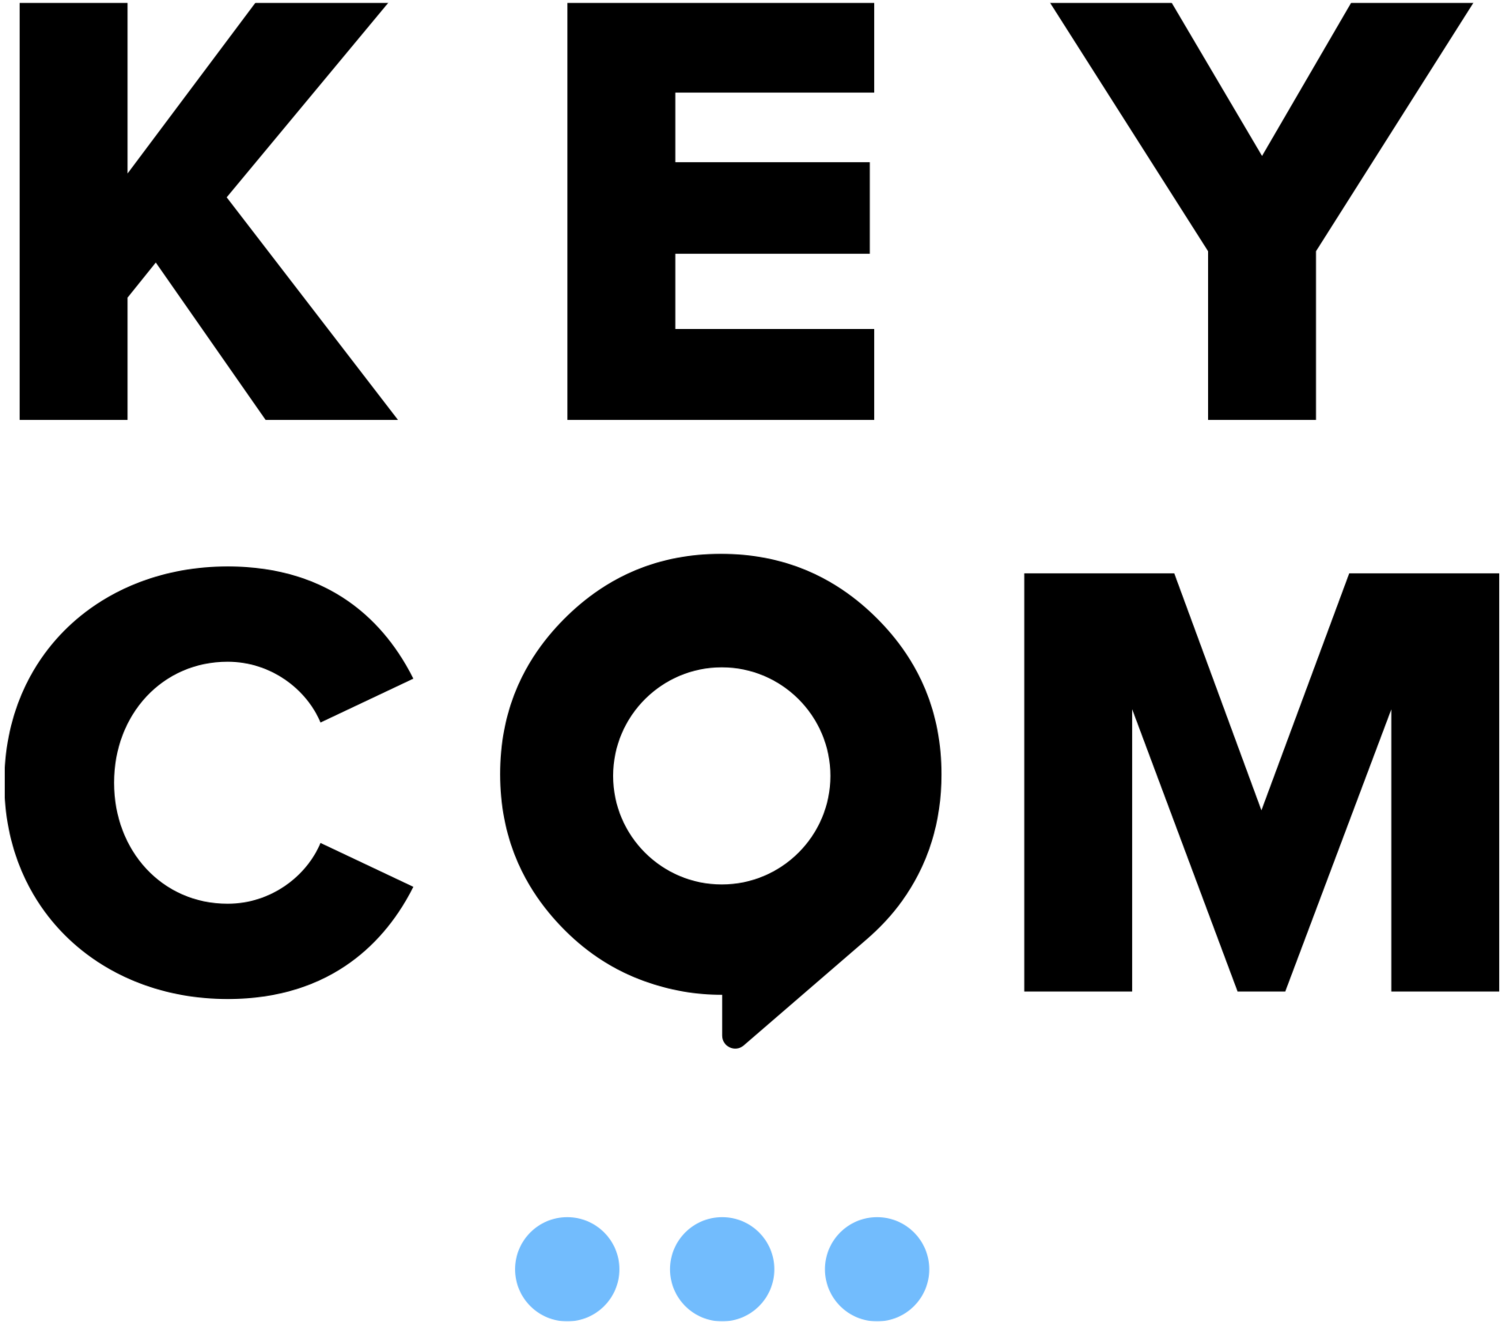 Keycom - Telenor Partner